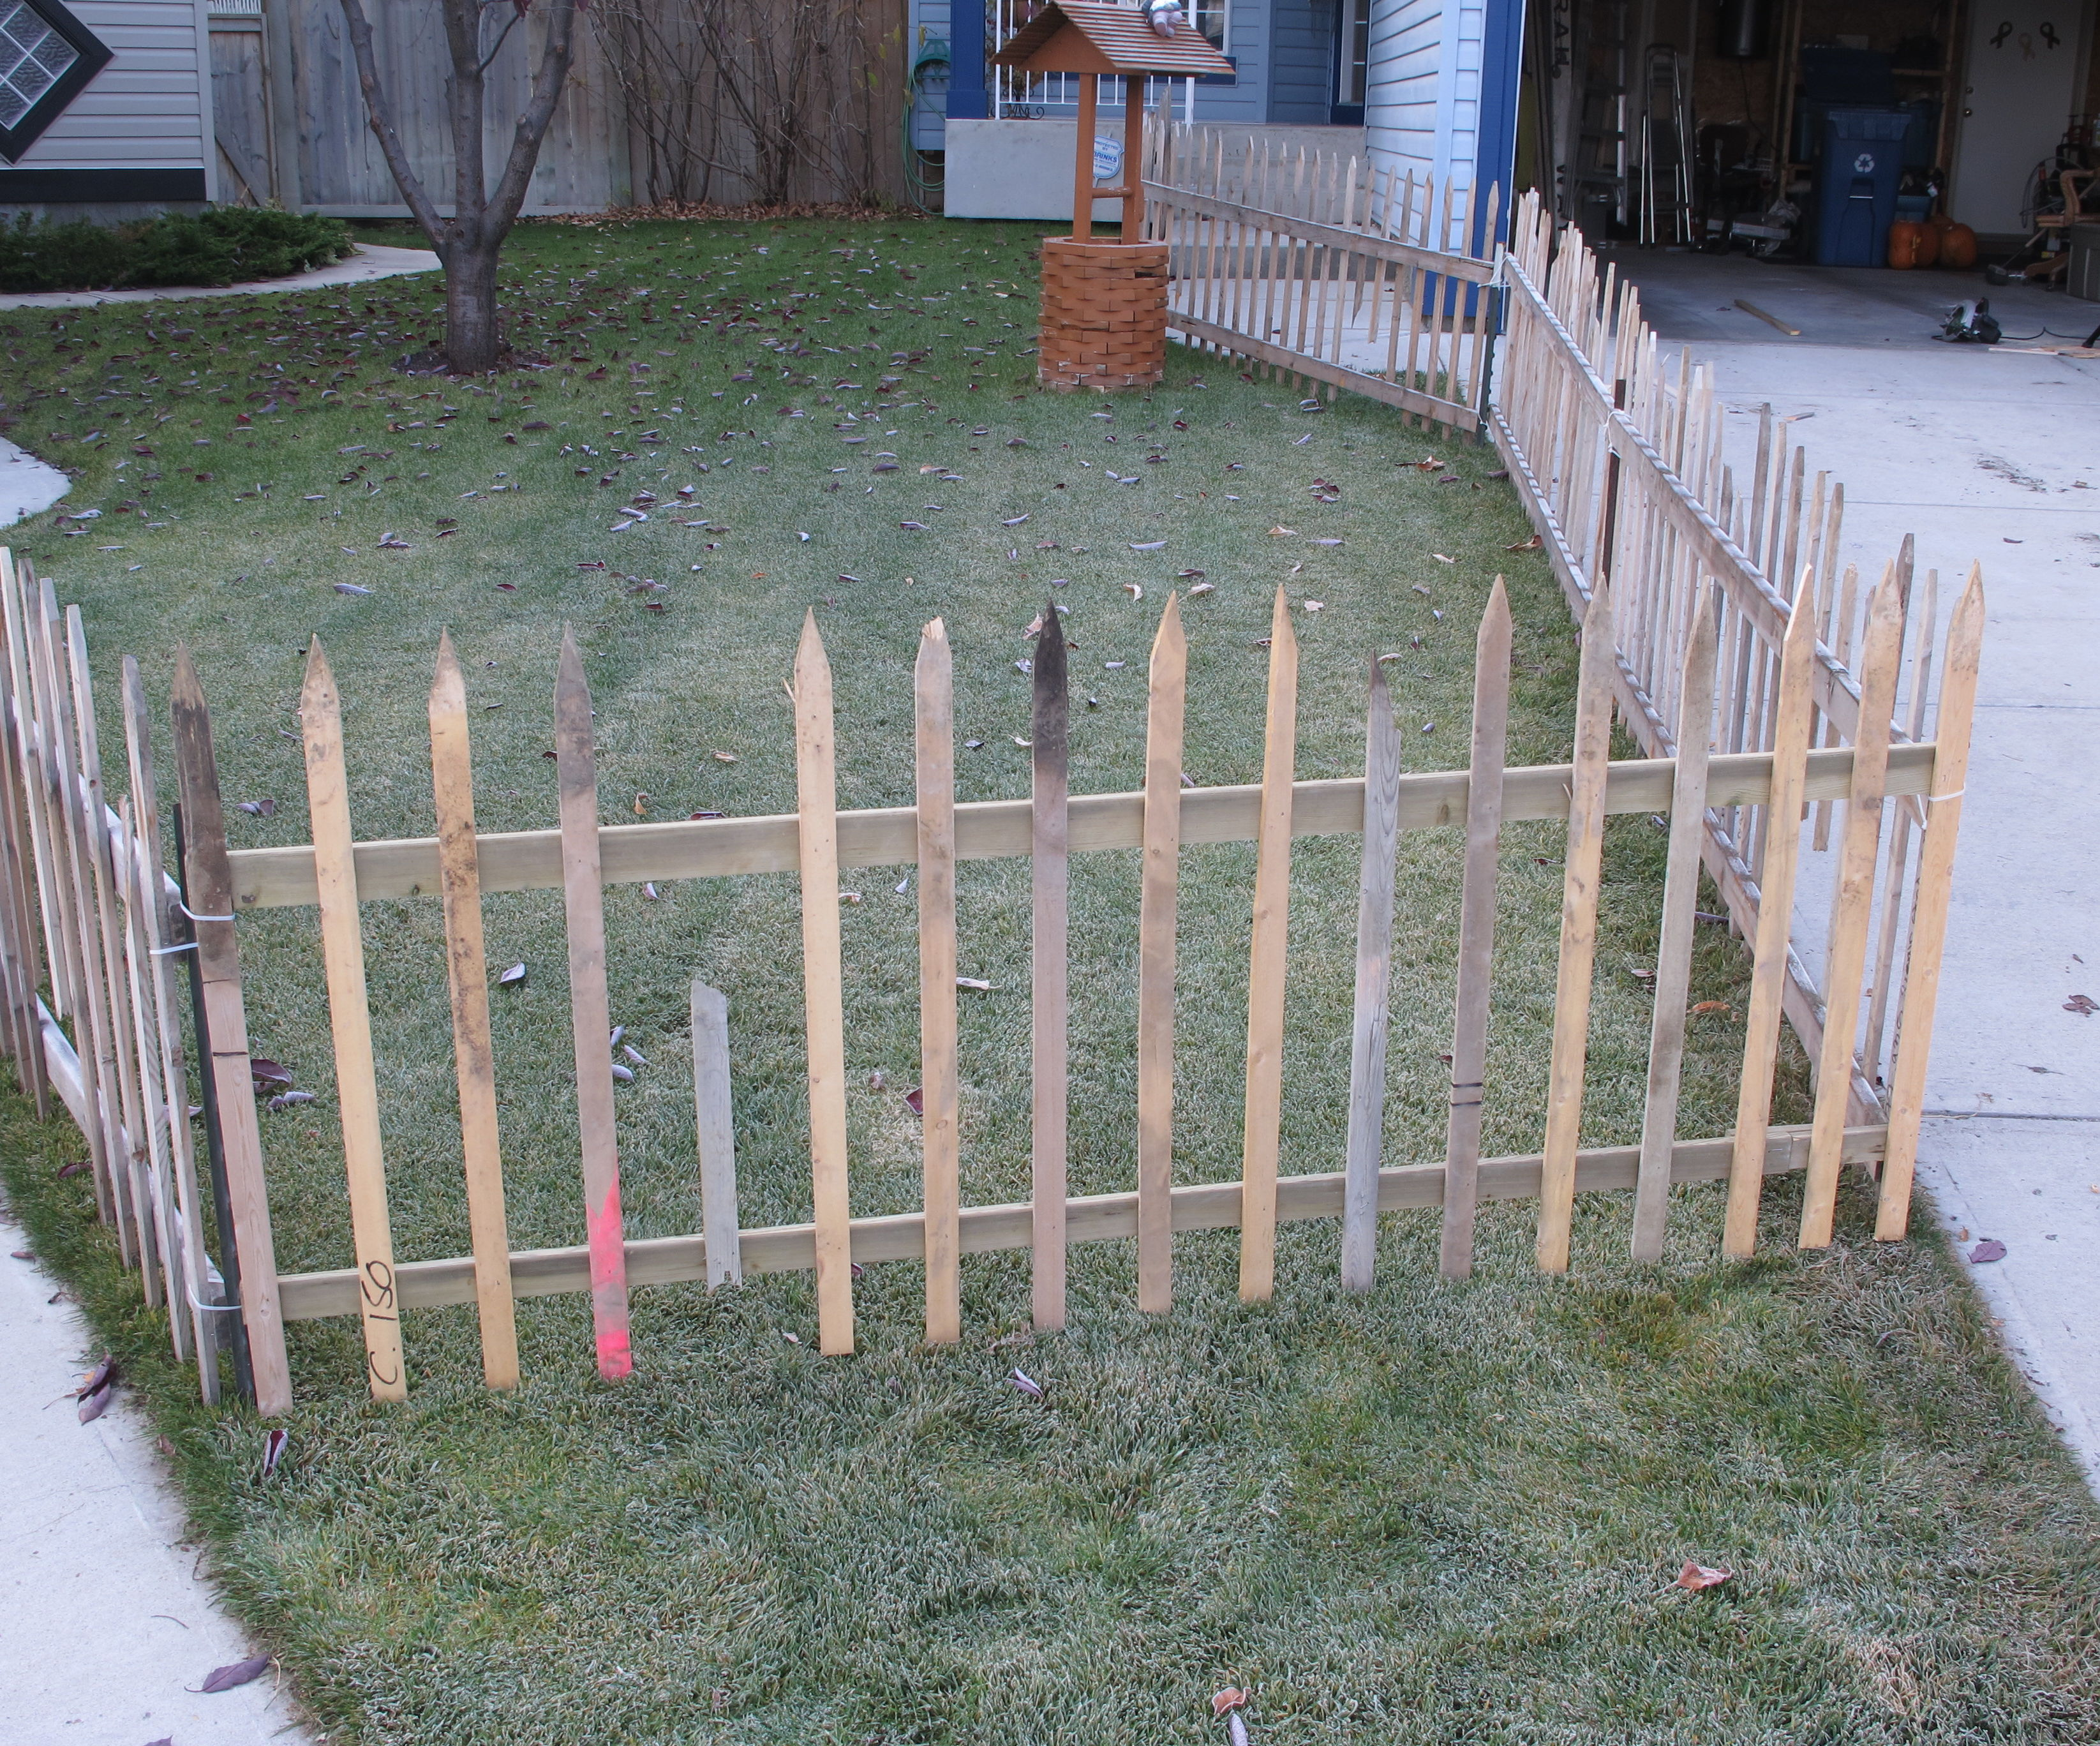 Halloween fencing made out of recycled materials